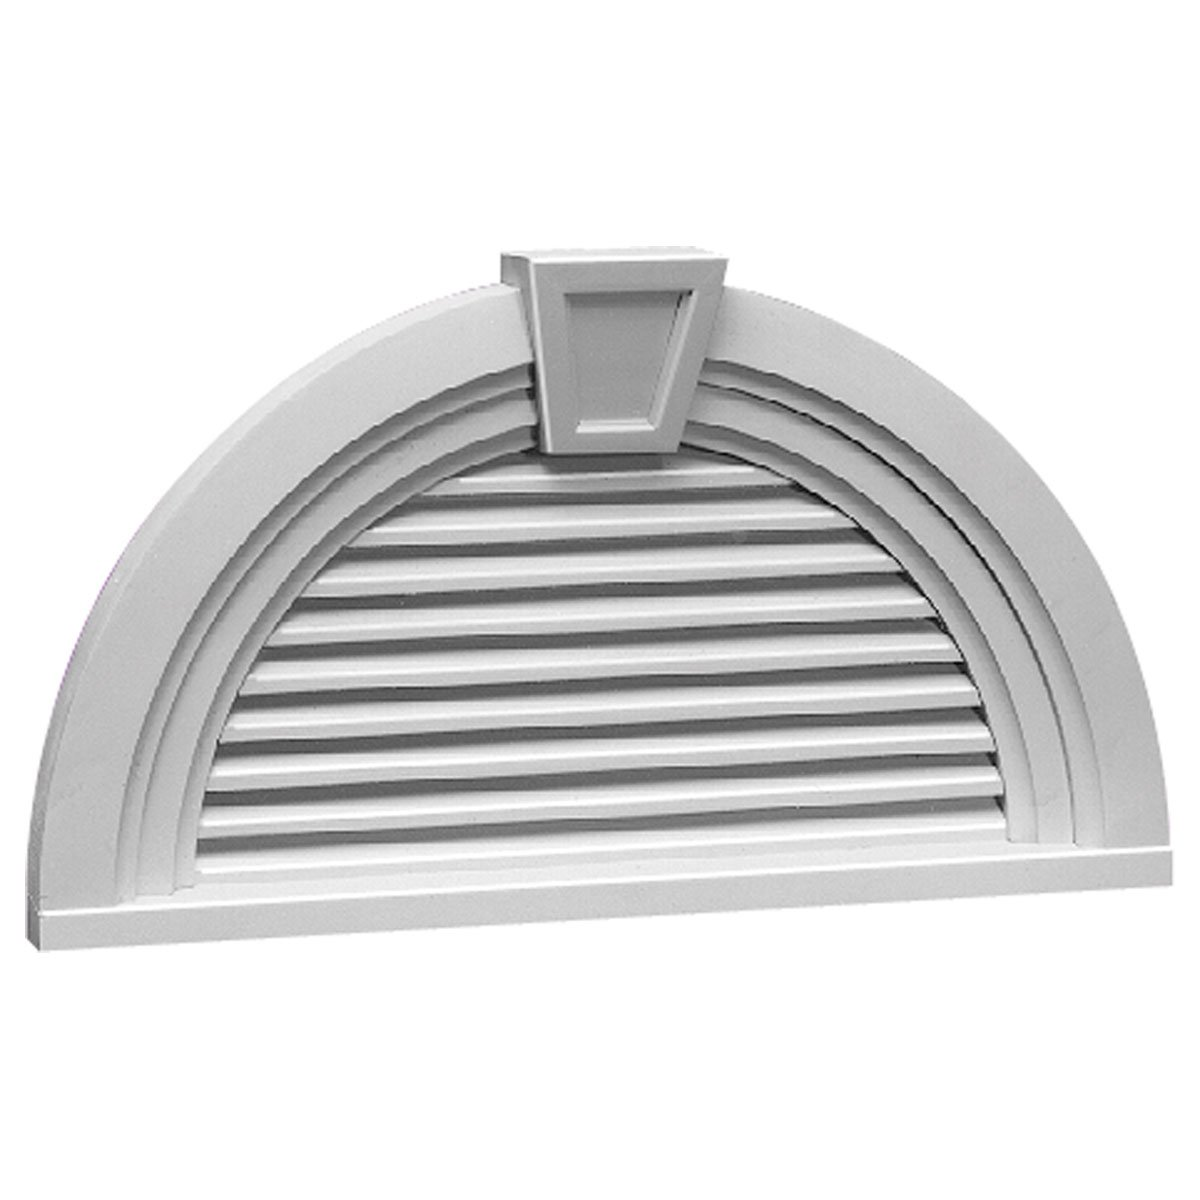 Fypon HRLV36X18MTK 36''W x 18''H Half Round Decorative Louver with Decorative Trim and Keystone by Fypon